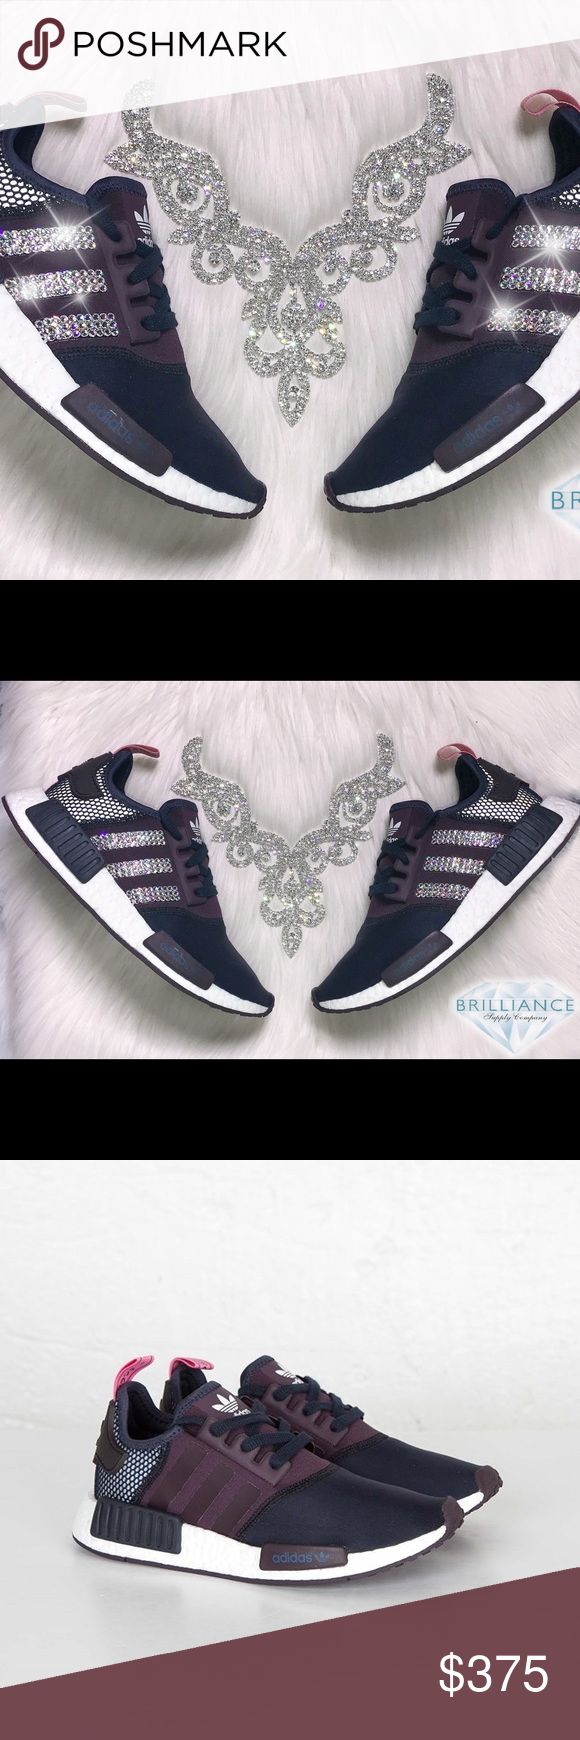 Adidas NMD R1 Women's Runner Blinged w/ Swarovski® Authentic Adidas NMD_R1 Women's Runners Nomad Legend In Navy/Purple. Style# S75232.  Outer Stripes Are Customized With HUNDREDS Of The Most Expensive SWAROVSKI® Crystals In The World. Our Crystals Feature X-Cut Technology For Diamond-Like Brilliance And Shine.  Brand new in original box, purchased directly from an authorized Adidas retailer.  Crystals have been applied with industrial strength glue. Will never come off.  For better pricing…